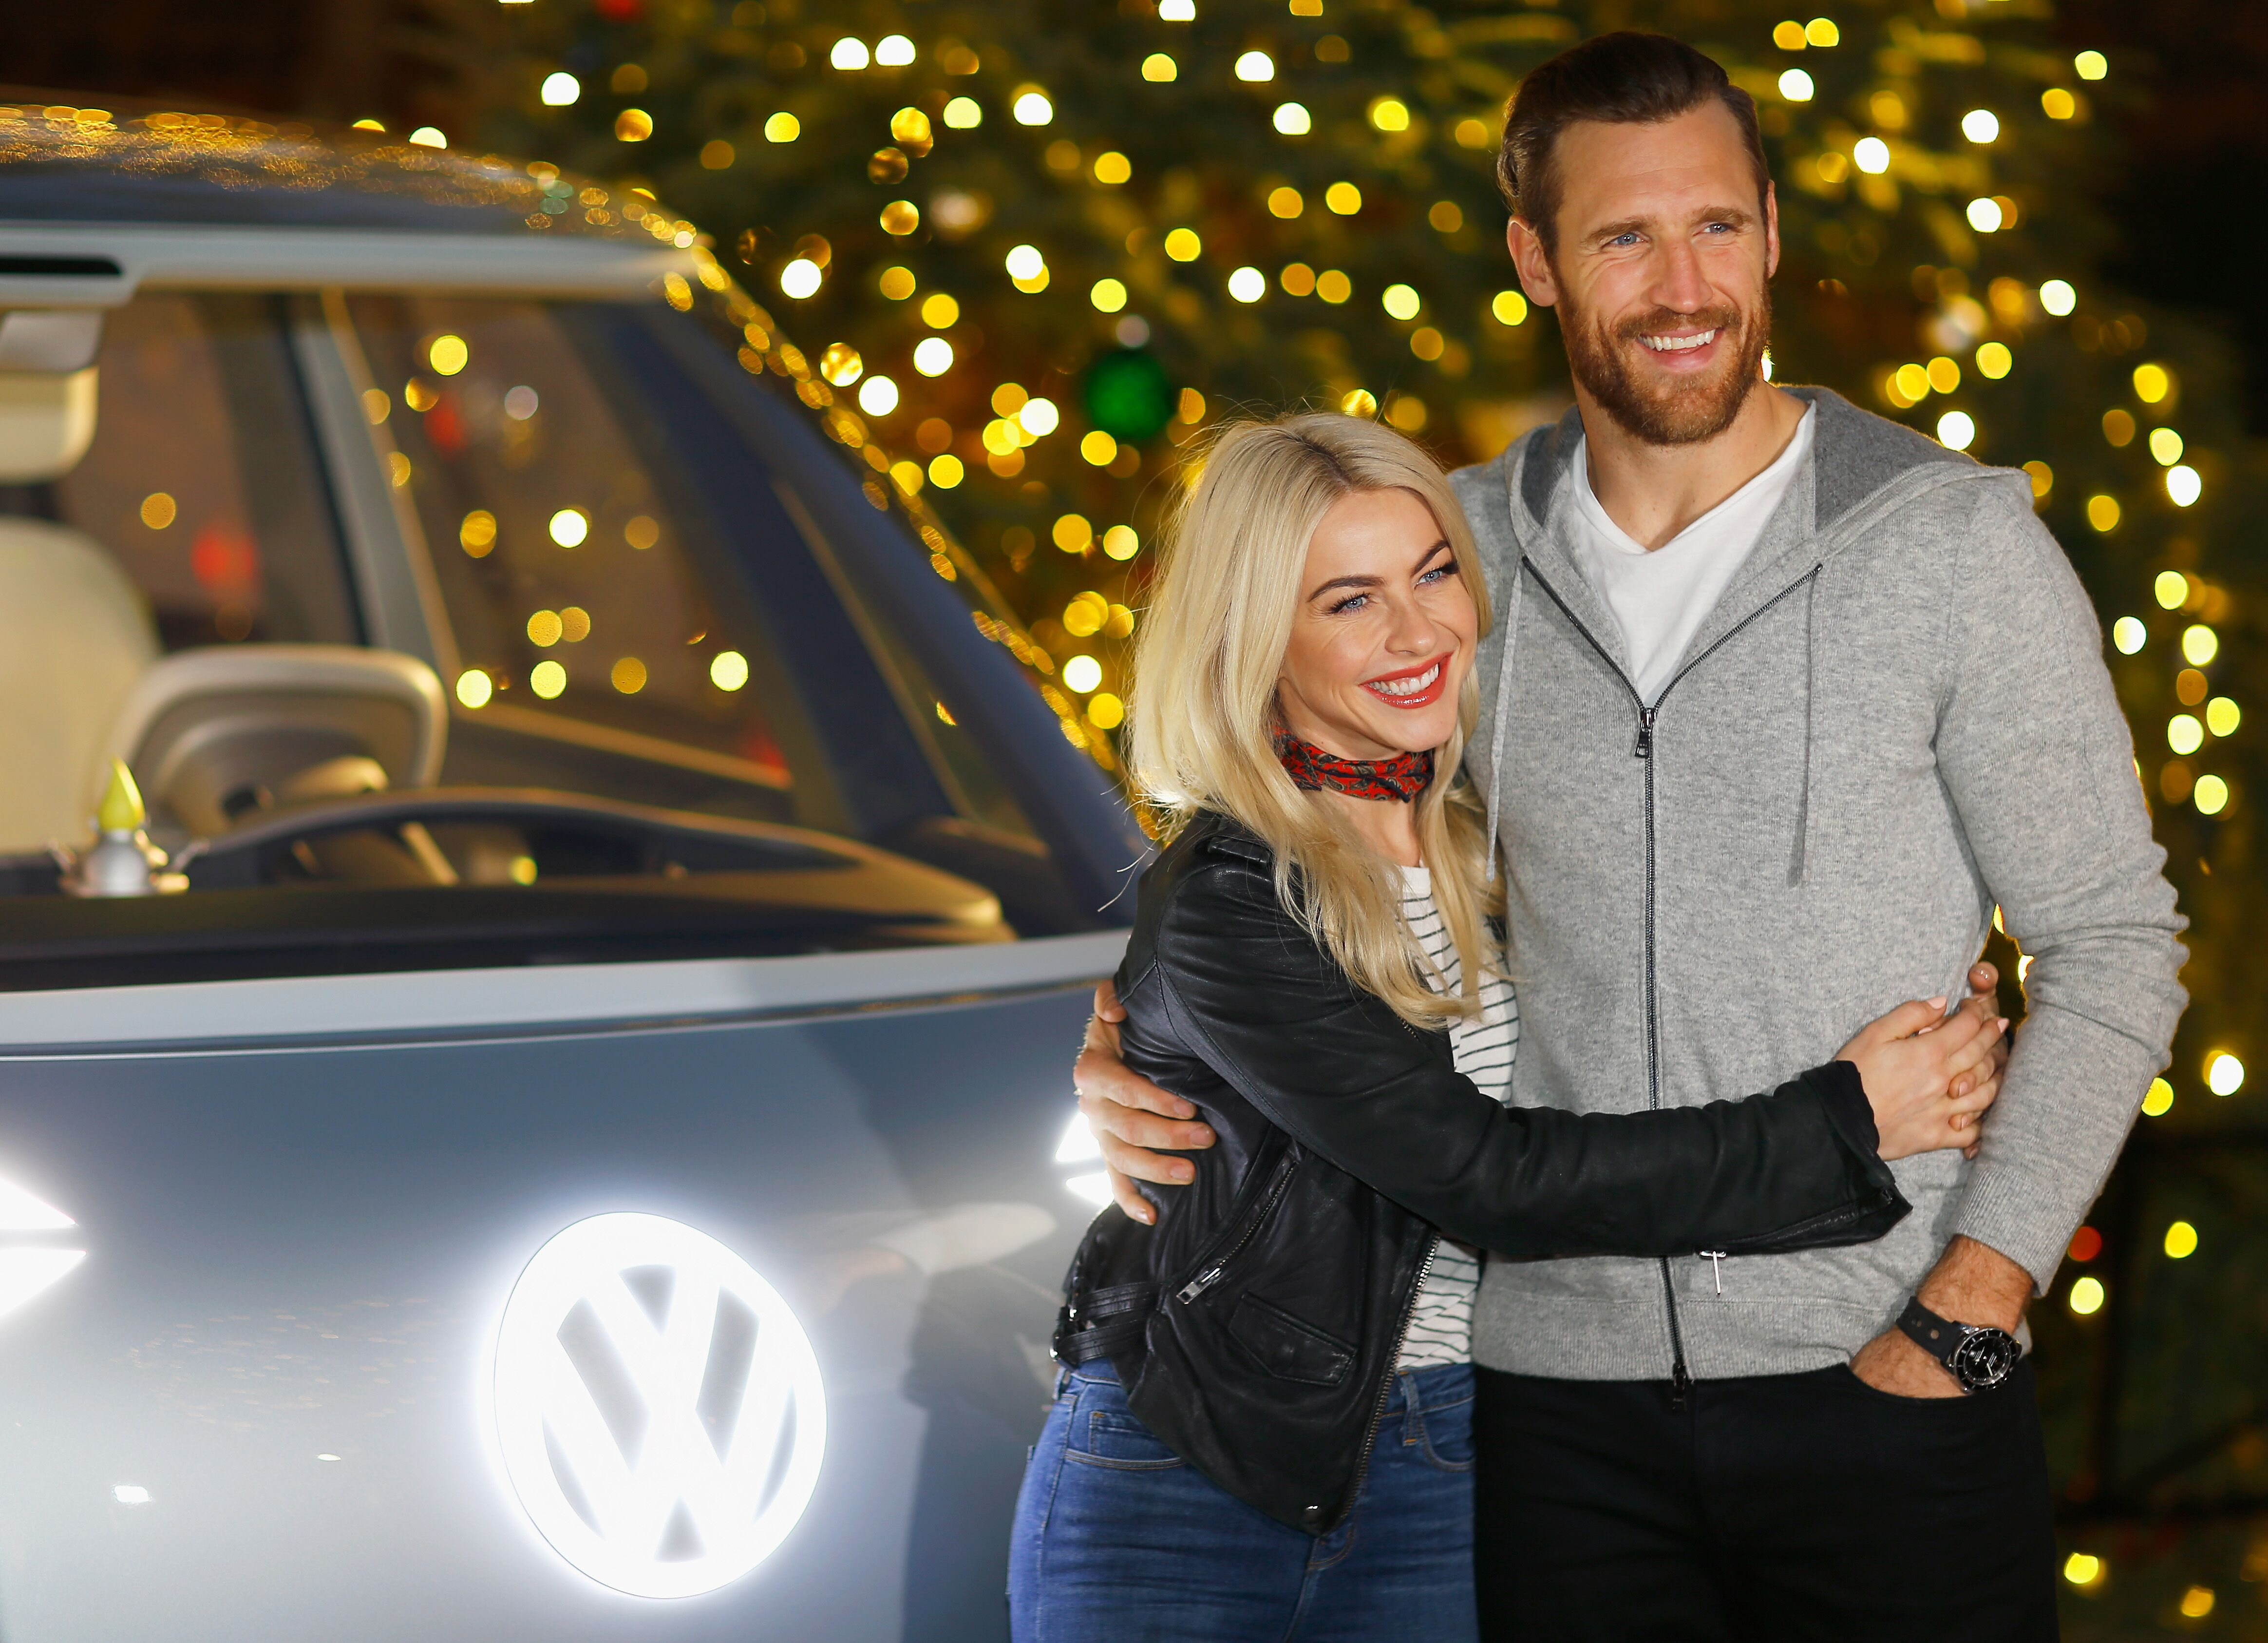 Julianne Hough and Brooks Laich at the Volkswagen Holiday Drive-In Event in Los Angeles, California on December 16, 2017 | Photo: Justin Edmonds/Getty Images